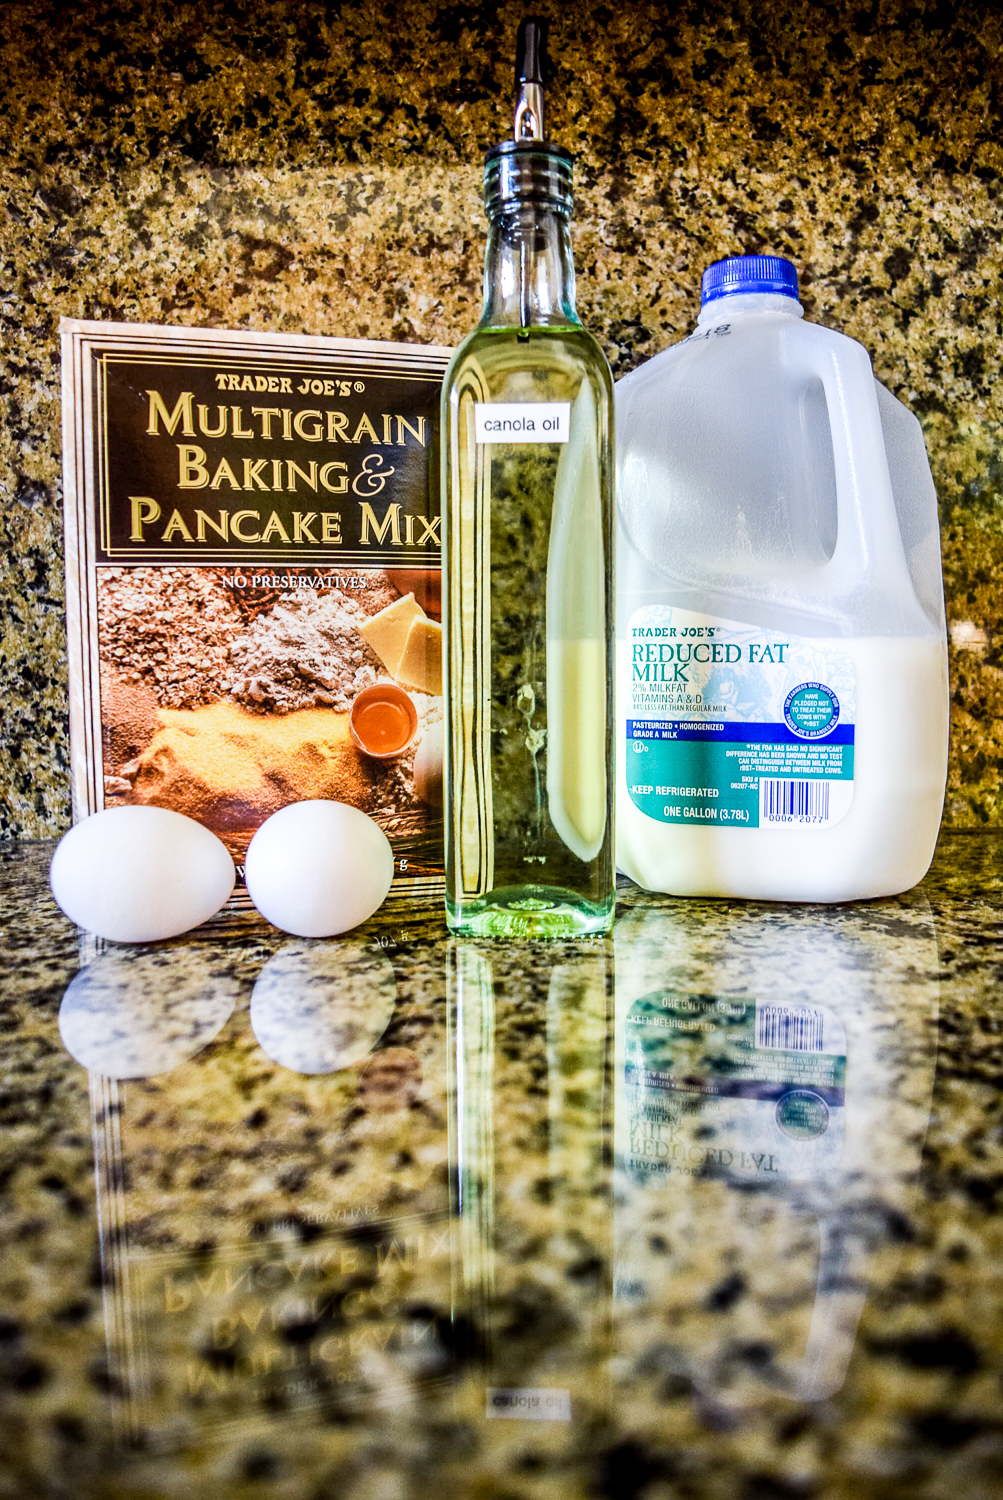 Ingredients for Multigrain Pancakes: Trader Joe's Multigrain Baking & Pancake Mix, Milk, Canola Oil, and Eggs